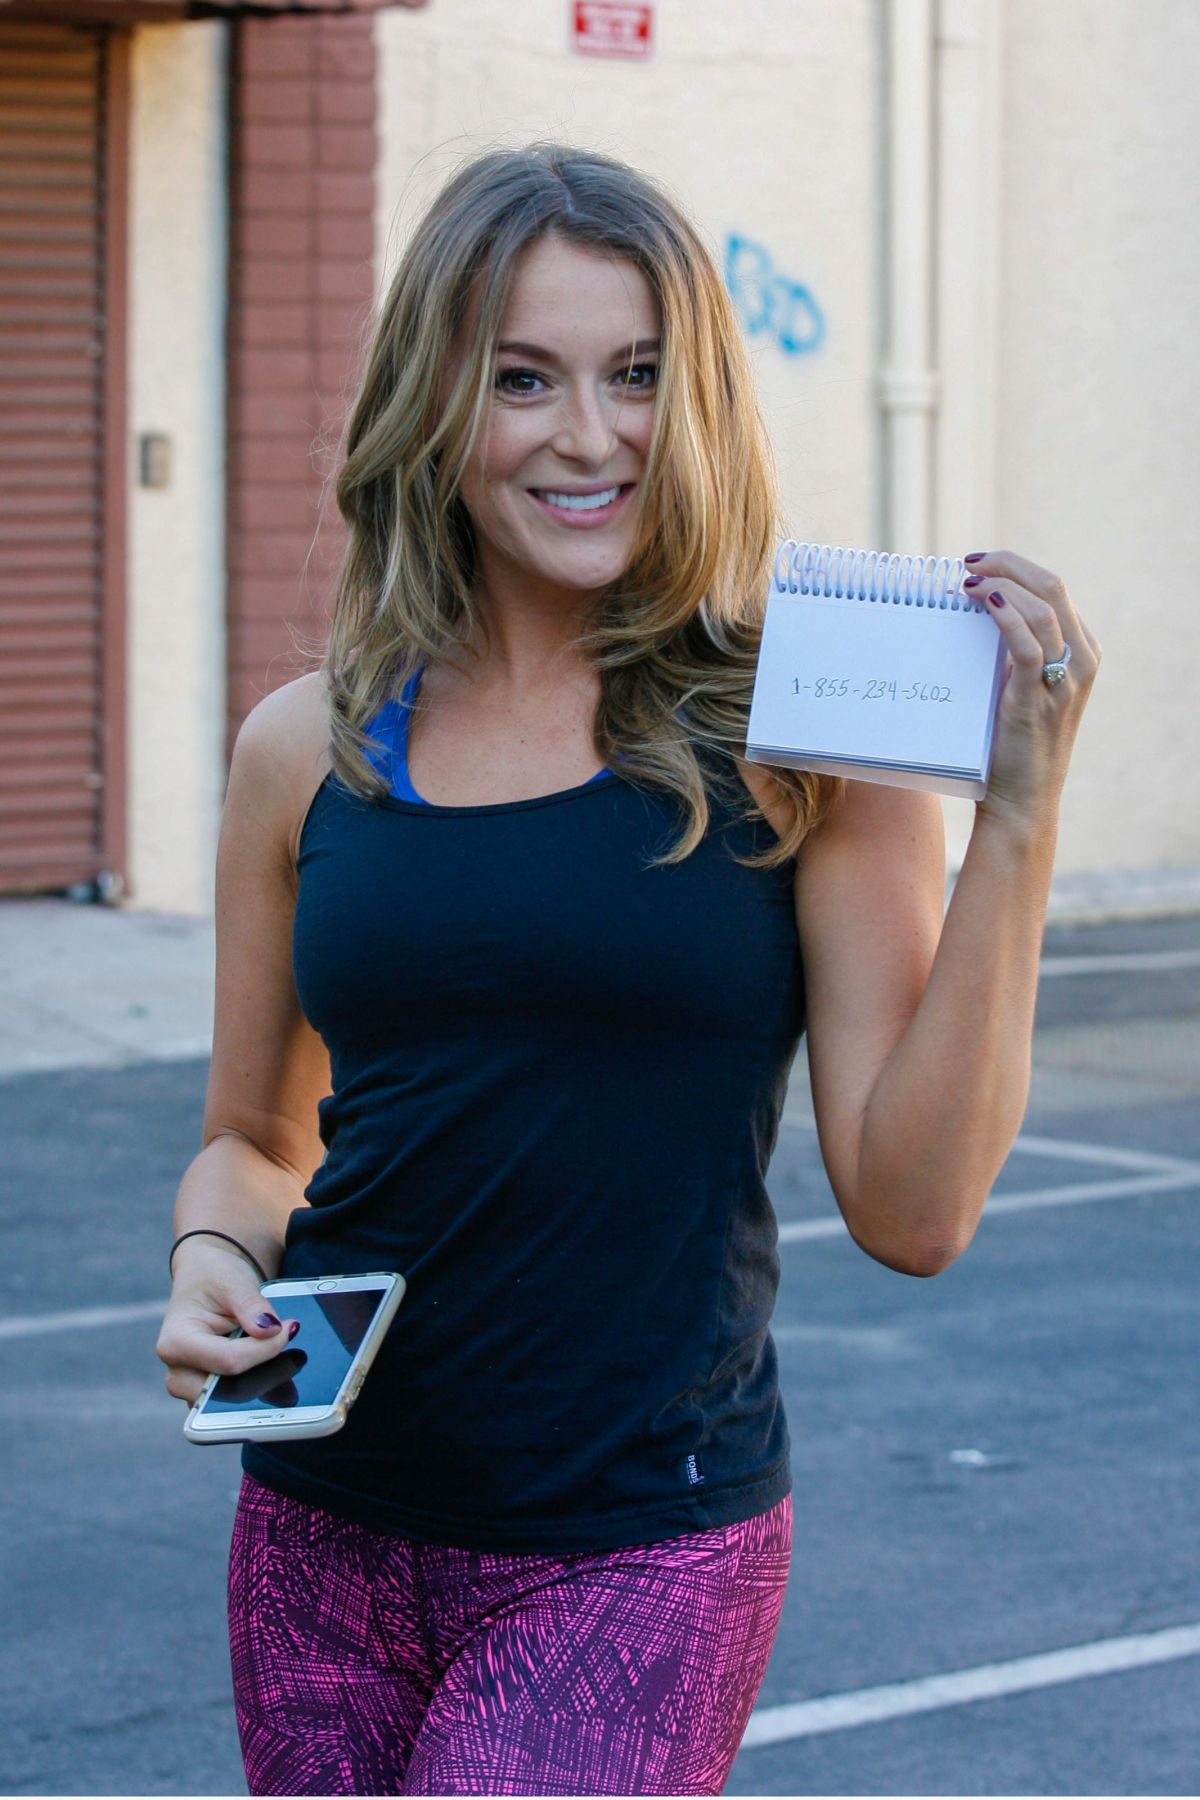 ALEXA VEGA at Dancing with the Stars Studio in Hollywood 09/17/2015